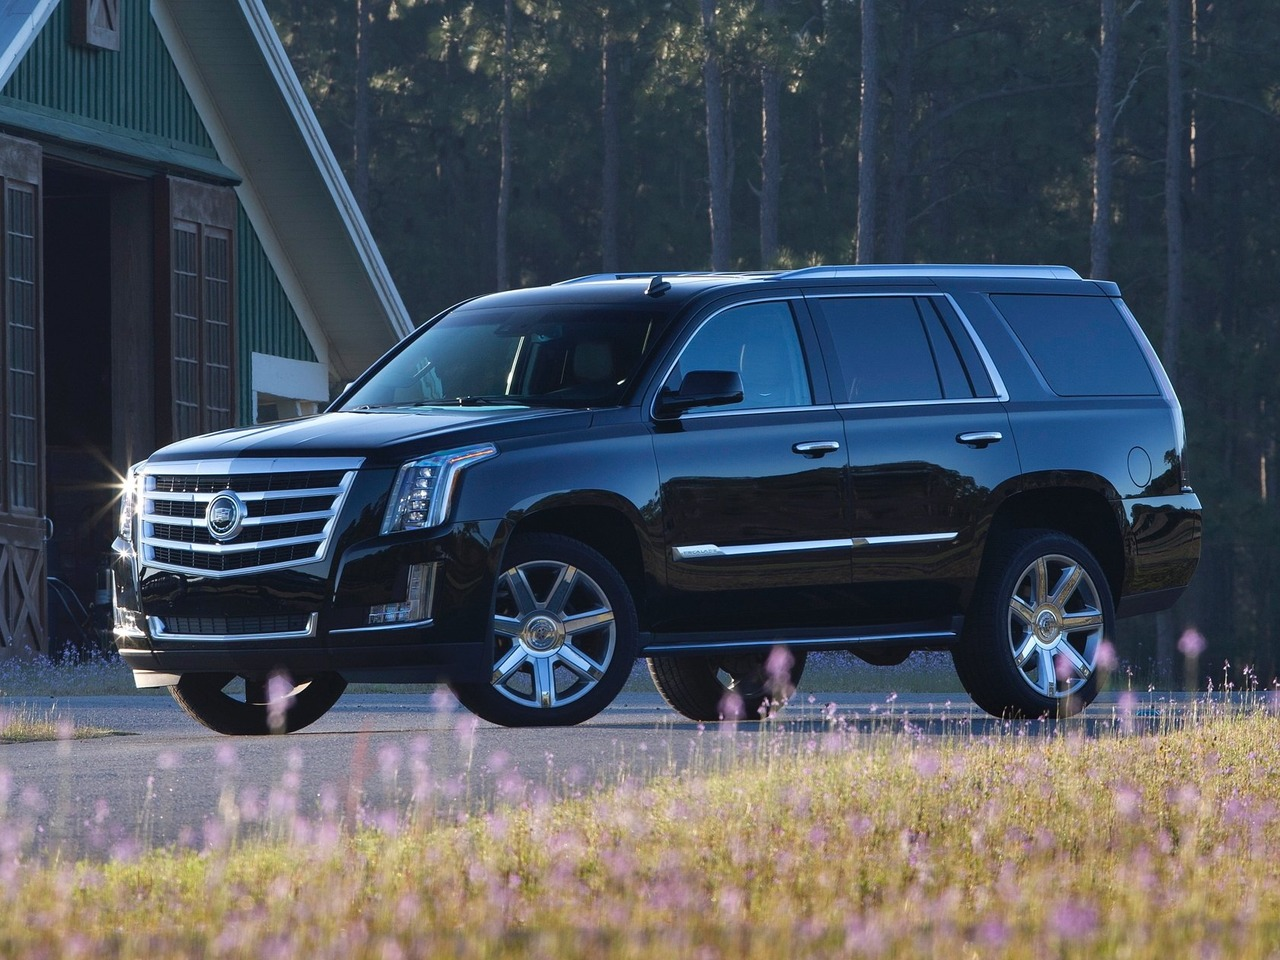 finest selection b146b 33898 www.tuning.bg   Cadillac   Escalade IV Технически характеристики ...